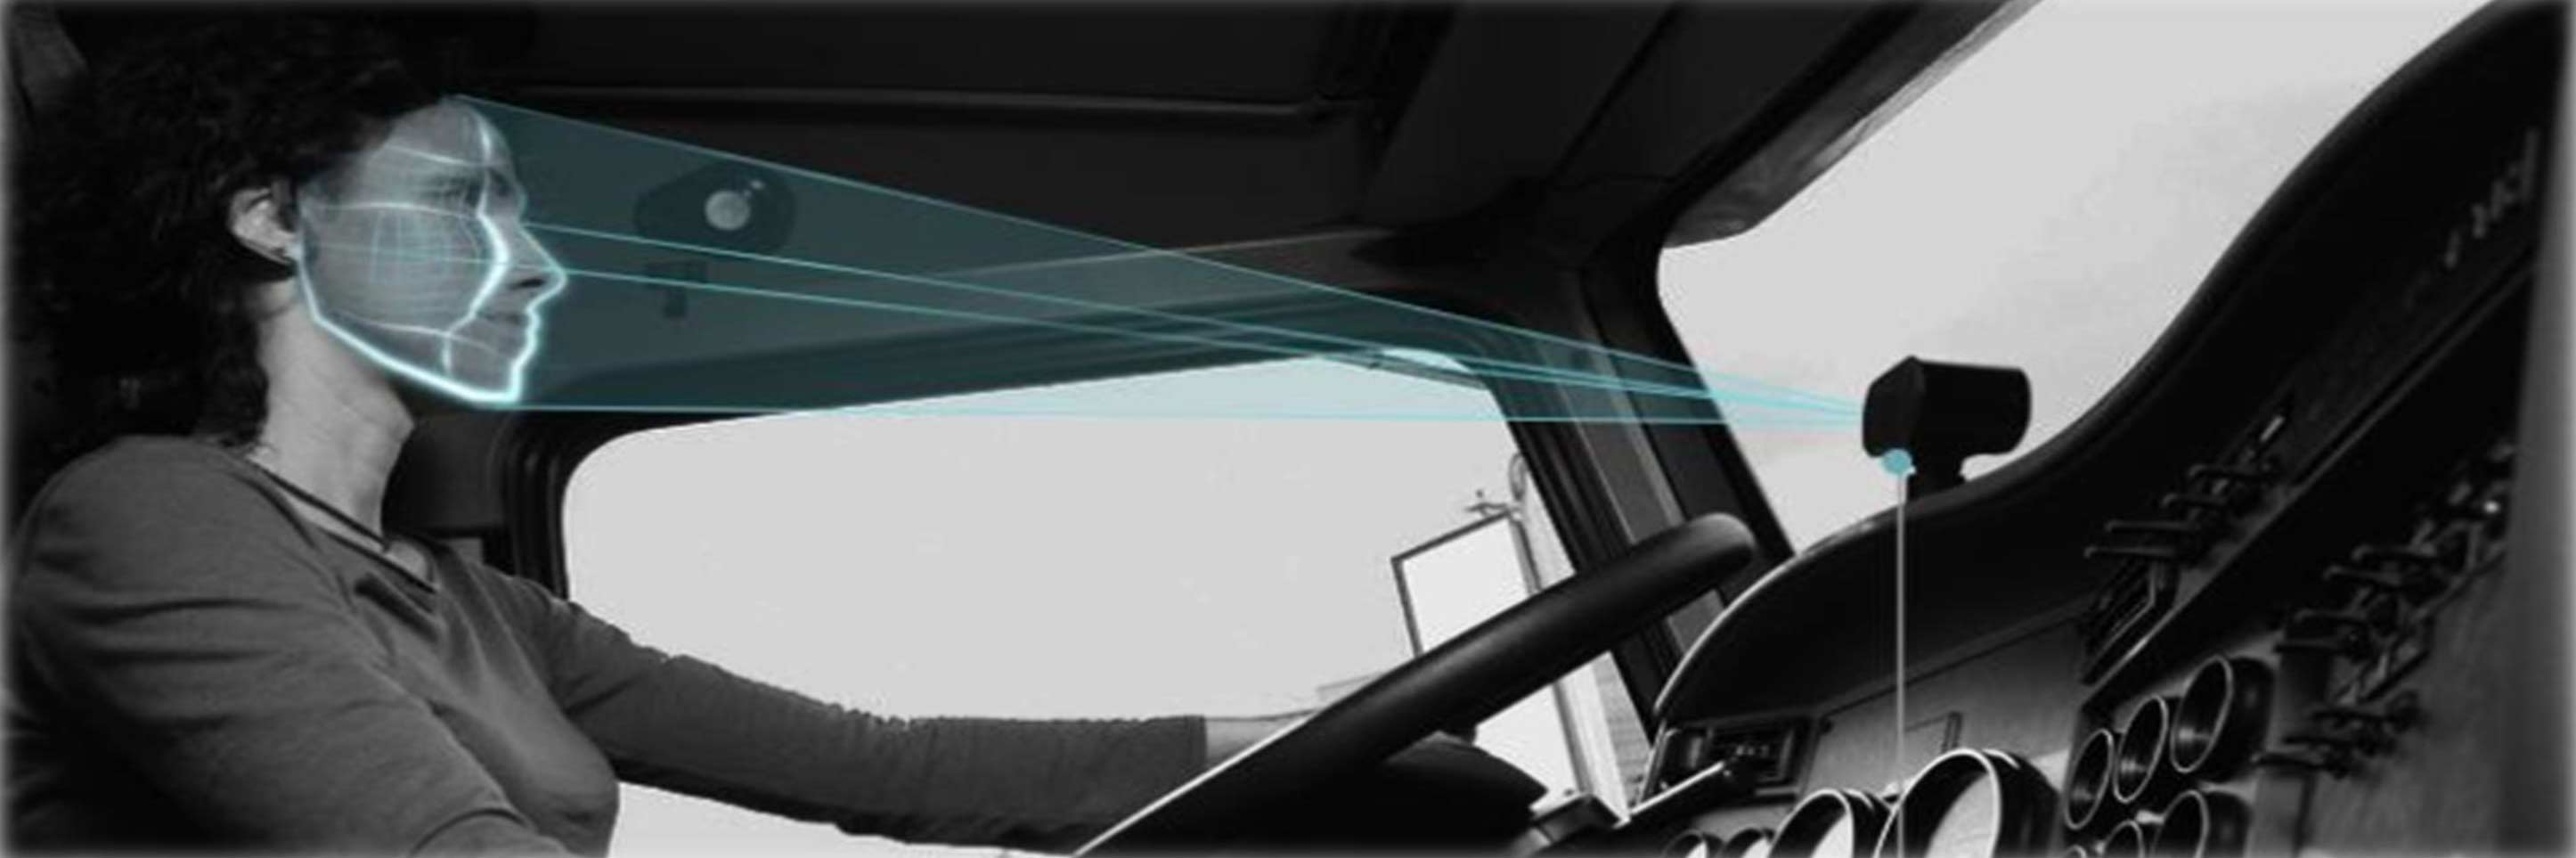 advanced driver assistance system face detection